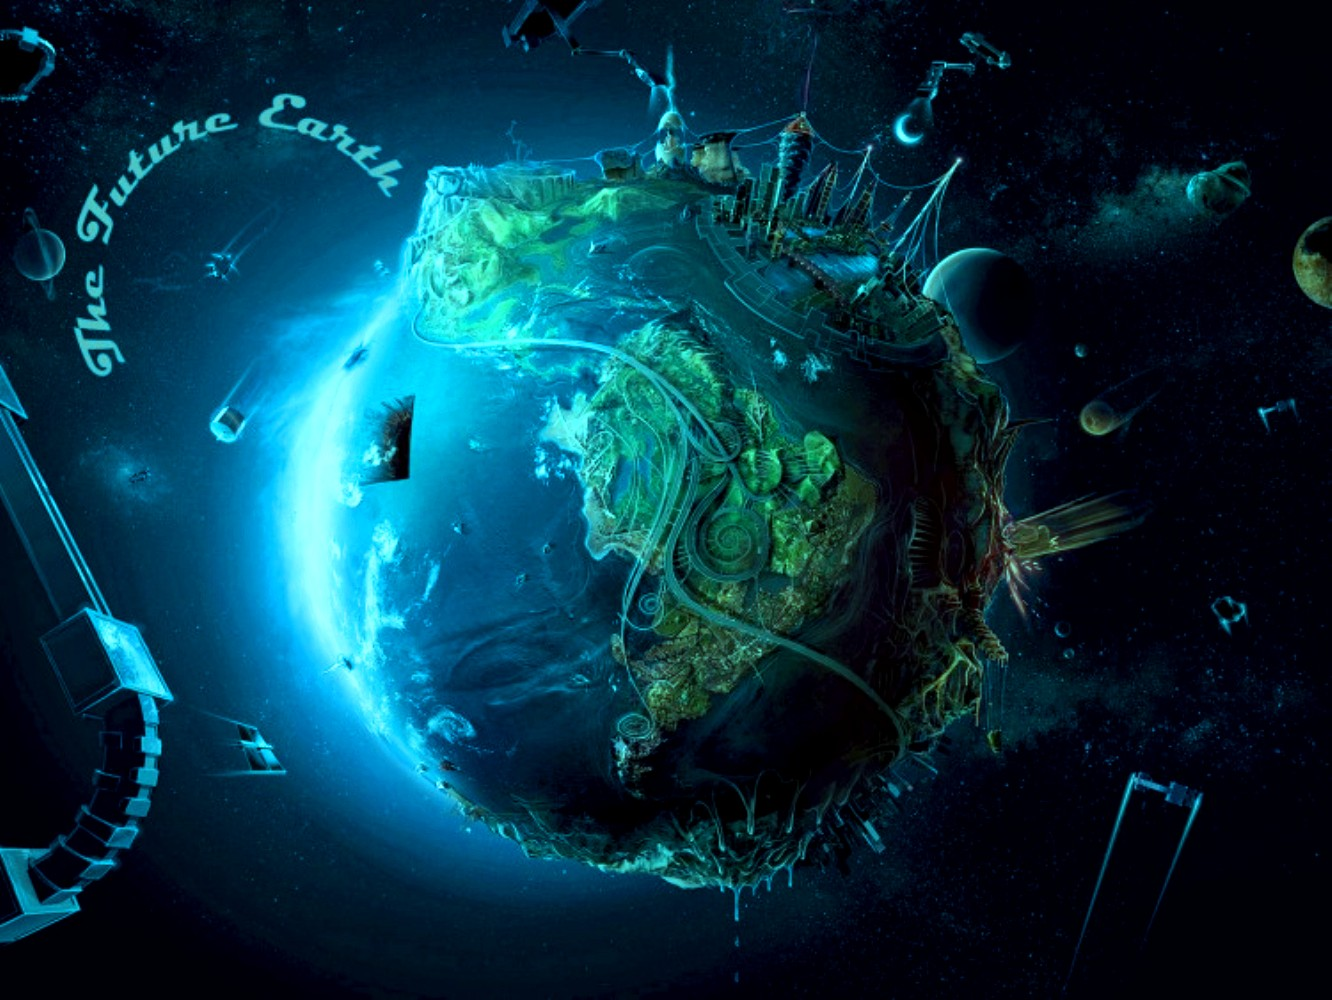 Future Earth Wallpaper and Background | 1332x1000 | ID:240185